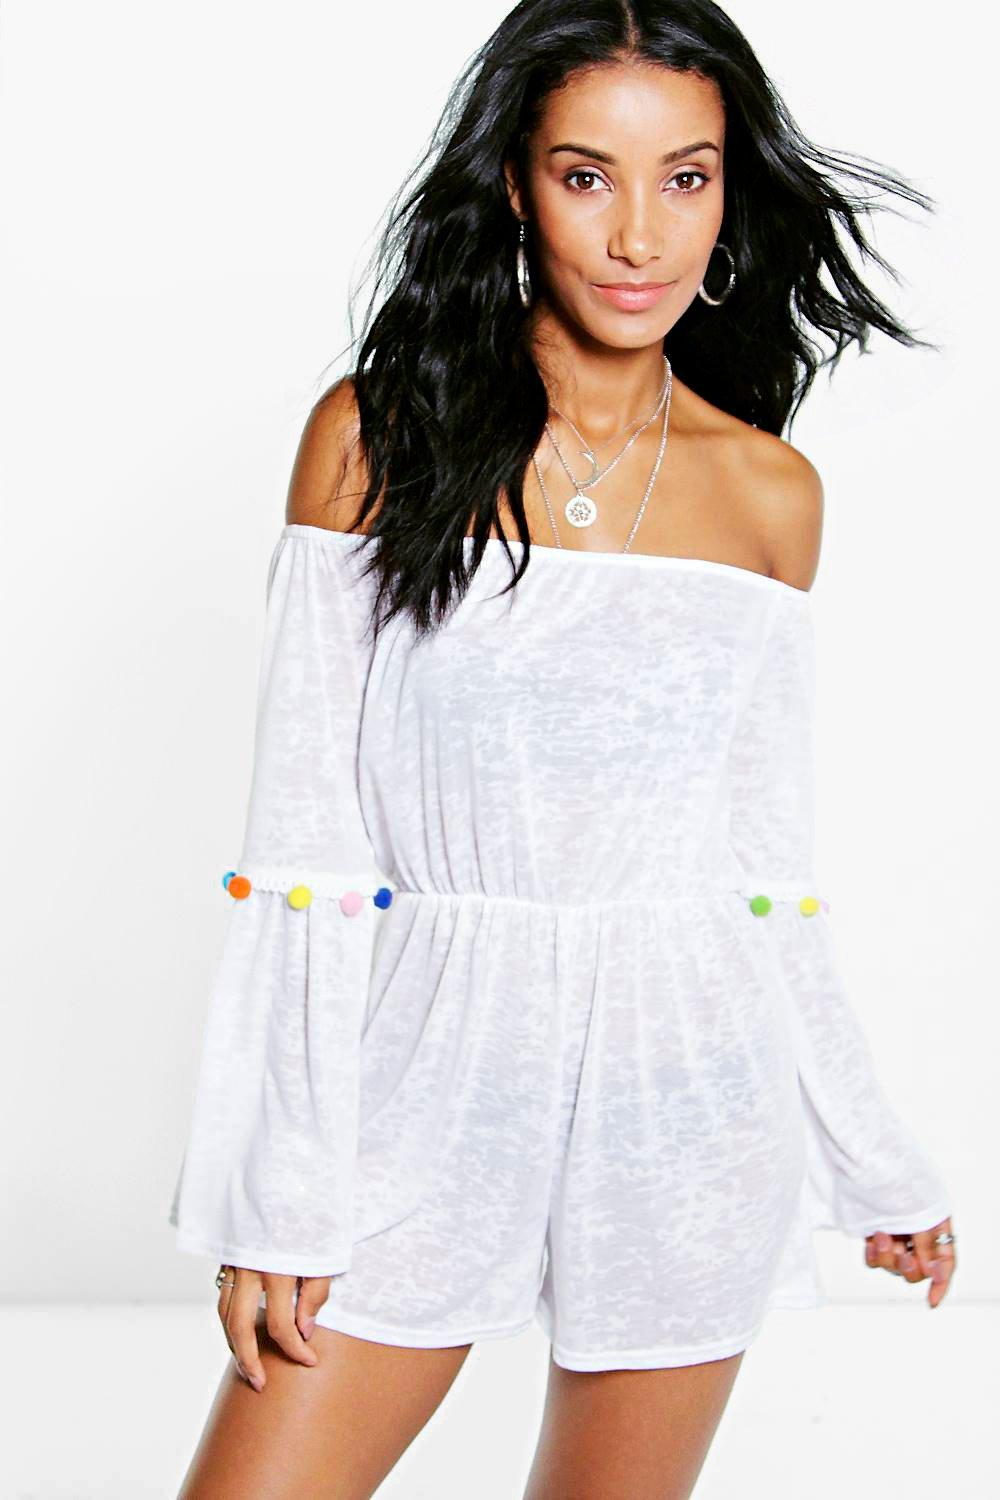 361f1453286 Summer Trends Series  All White Party Attire — Luxe LeBlanc